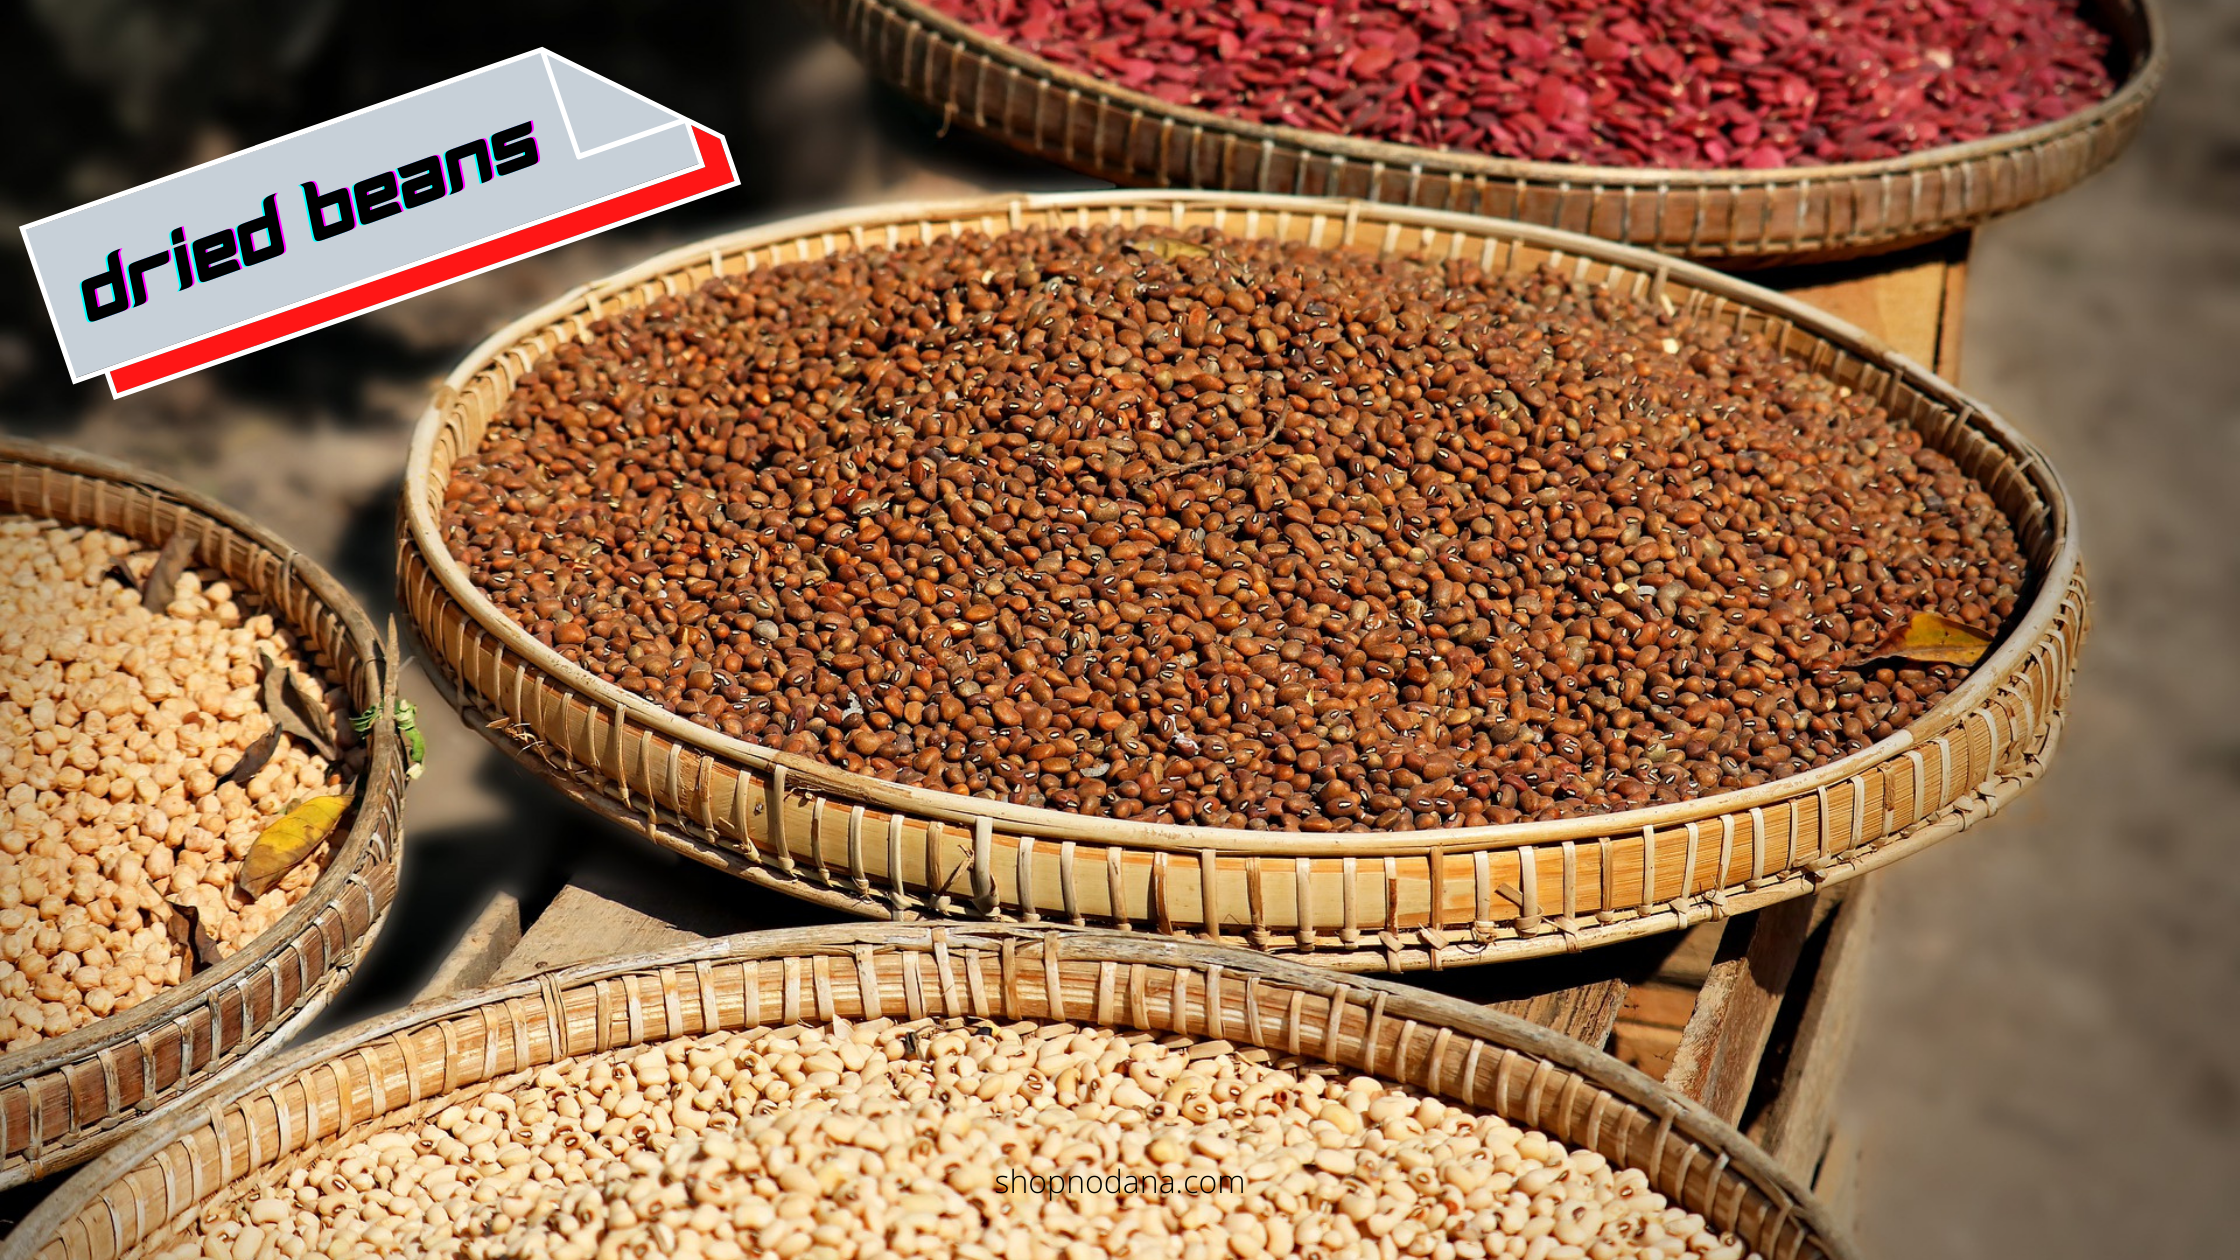 Dried beans- Foods that last a long time without refrigeration